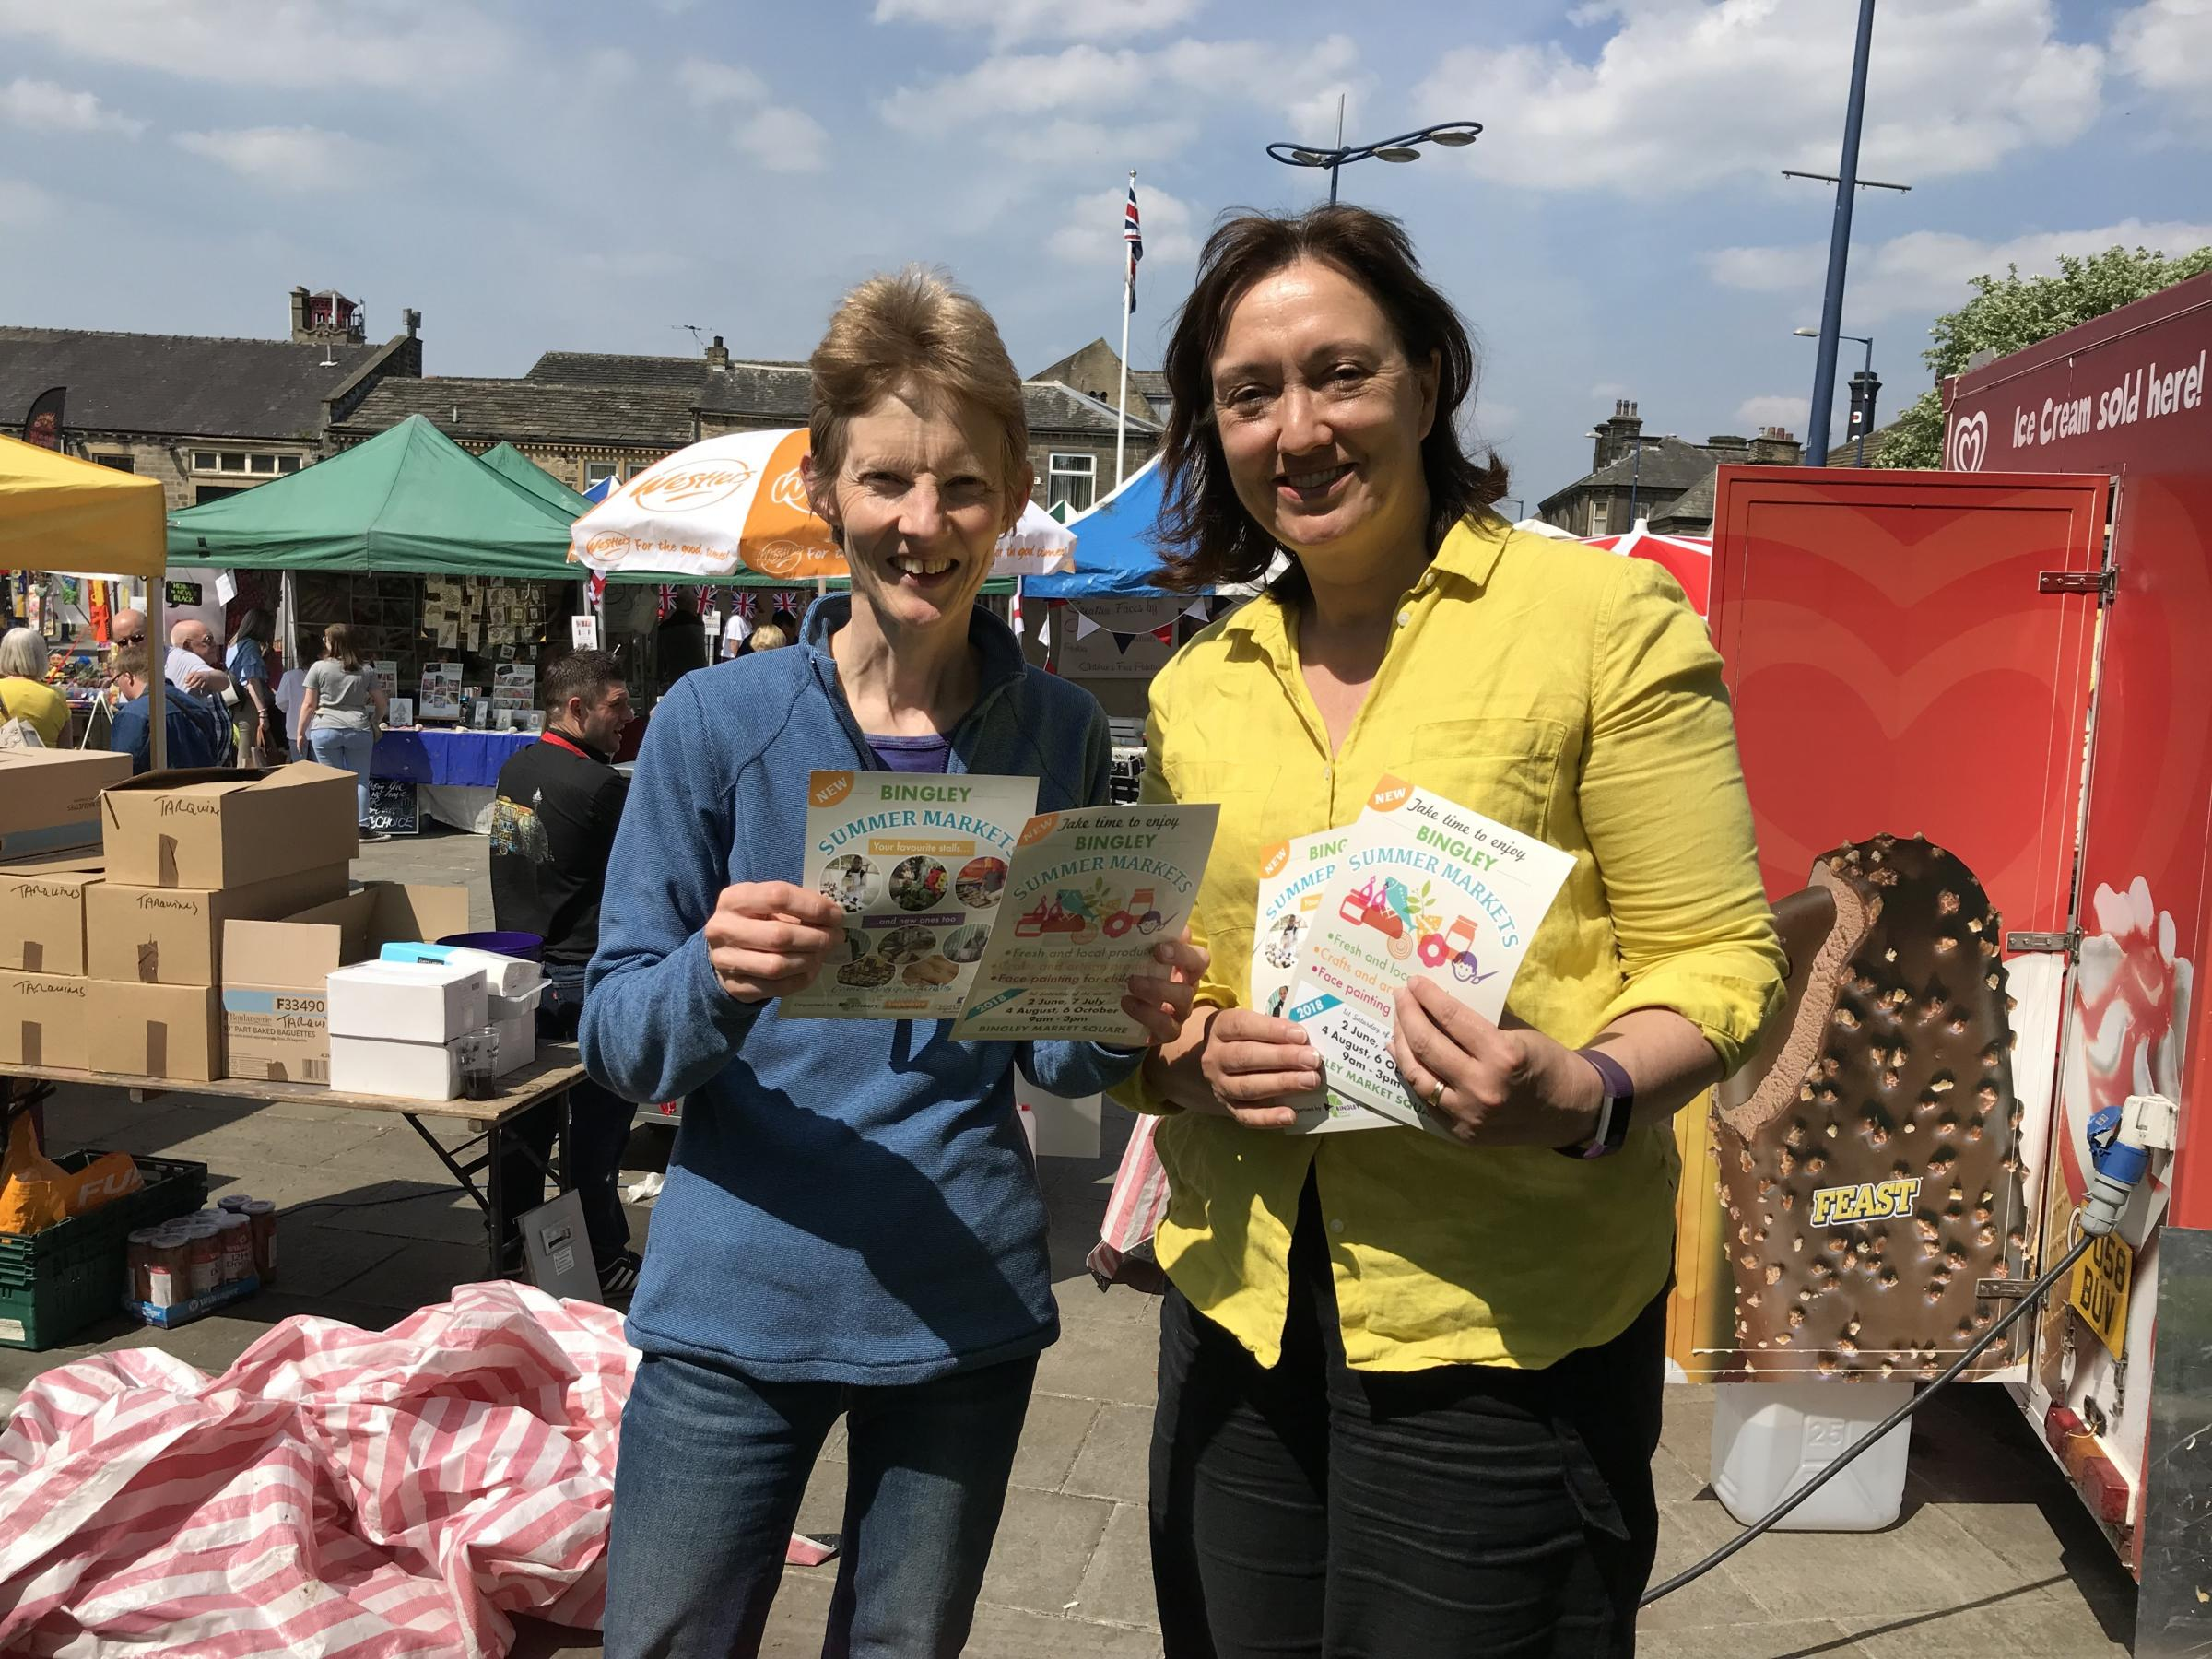 Bingley summer markets Cllrs Edwina Simpson and Ros Dawson promoting the new markets